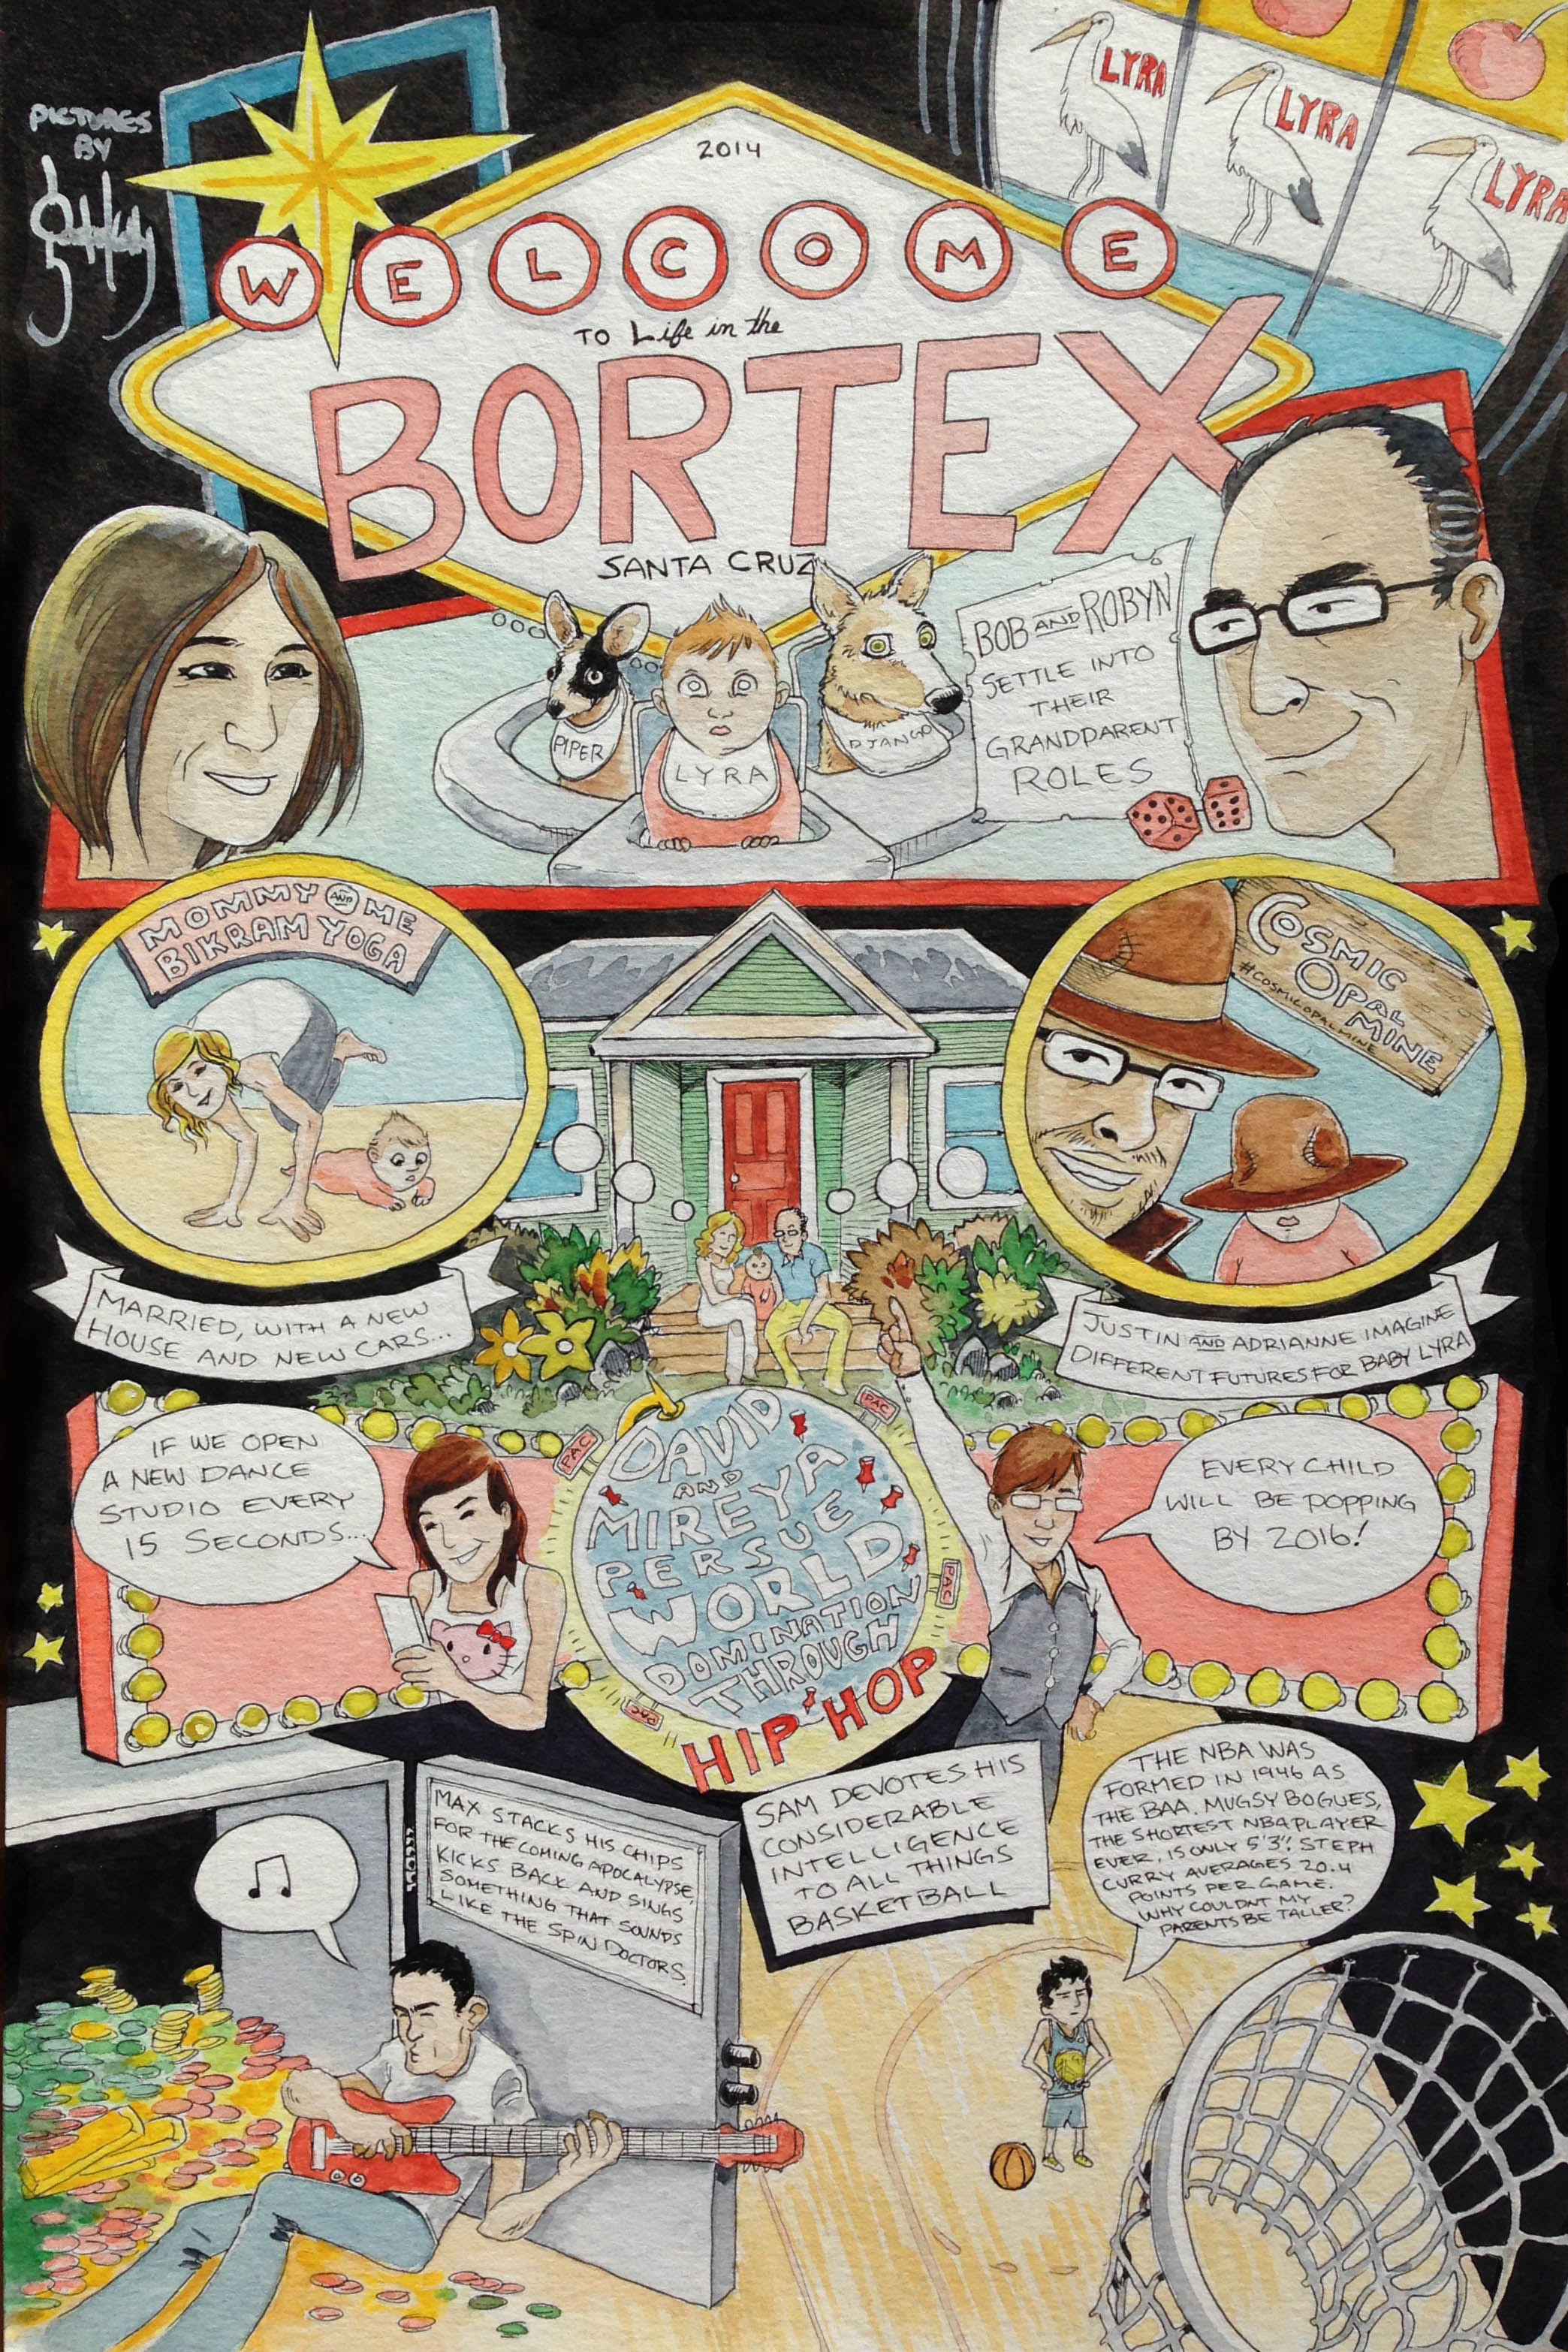 bortex-2014-gaelan-kelly